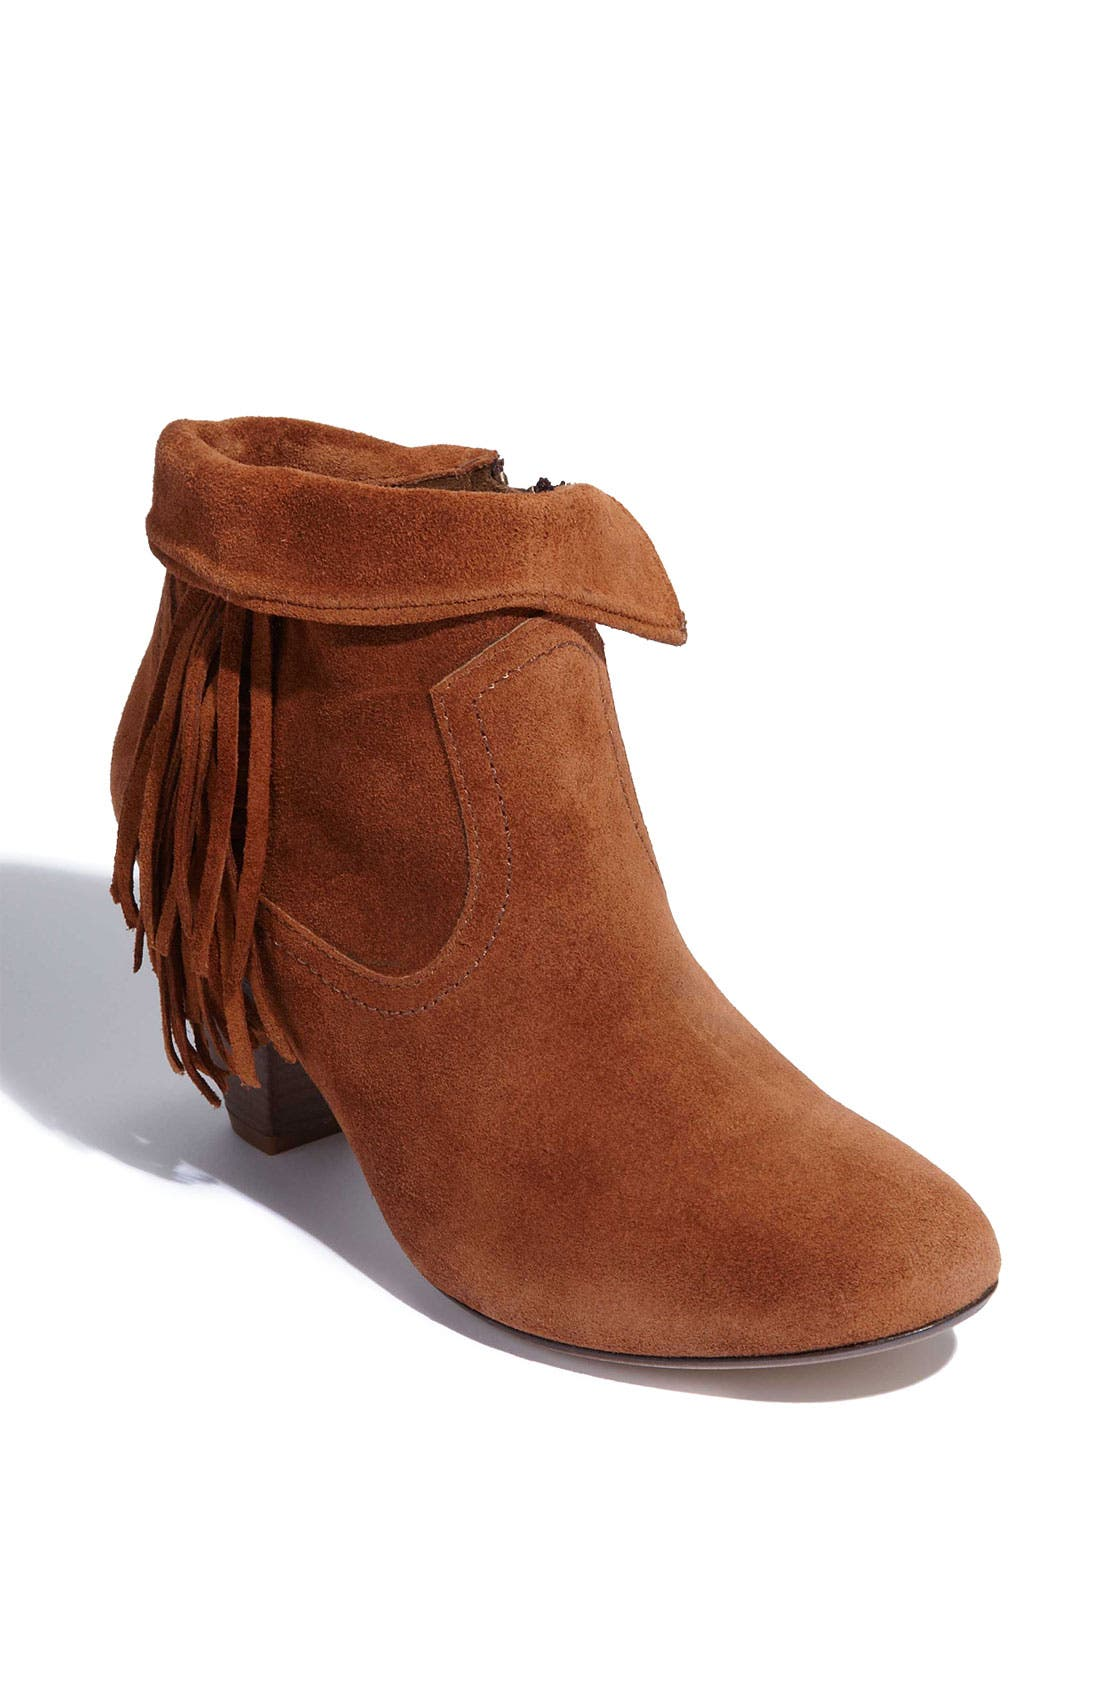 Alternate Image 1 Selected - Steve Madden 'Pisstoll' Fringe Bootie